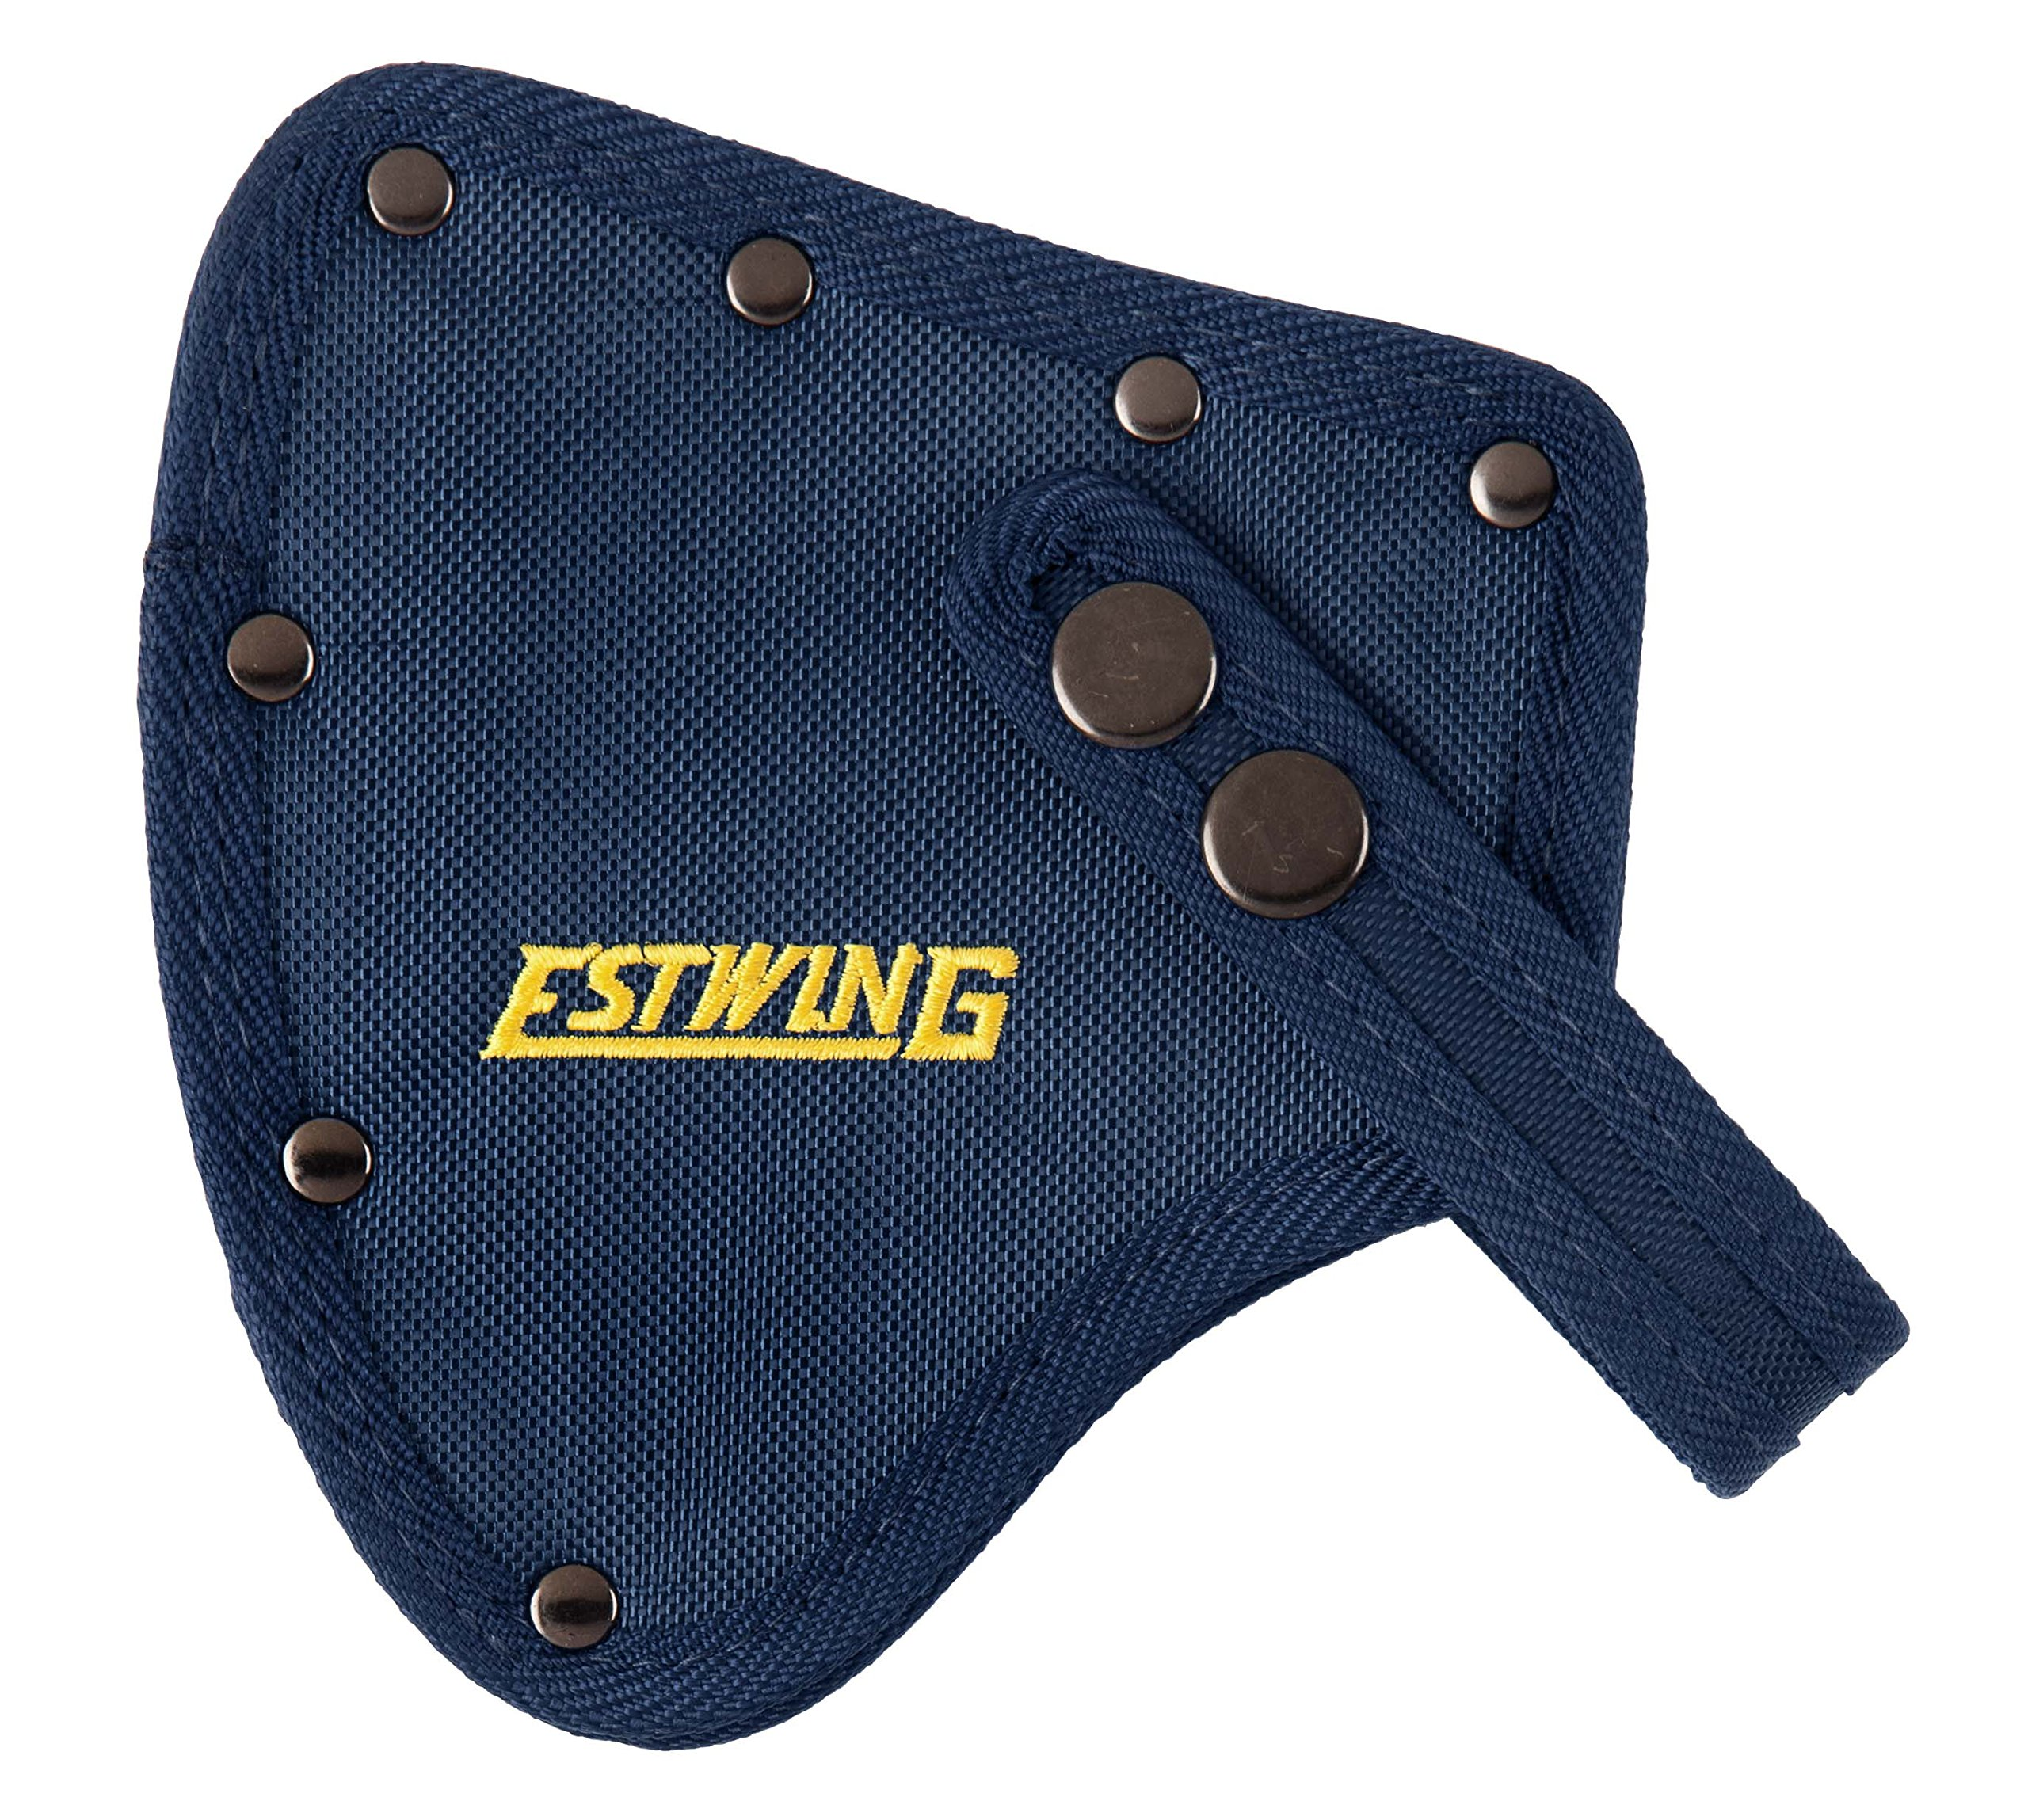 Estwing Camper's Axe - 16'' Hatchet with Forged Steel Construction & Shock Reduction Grip - E44A by Estwing (Image #5)